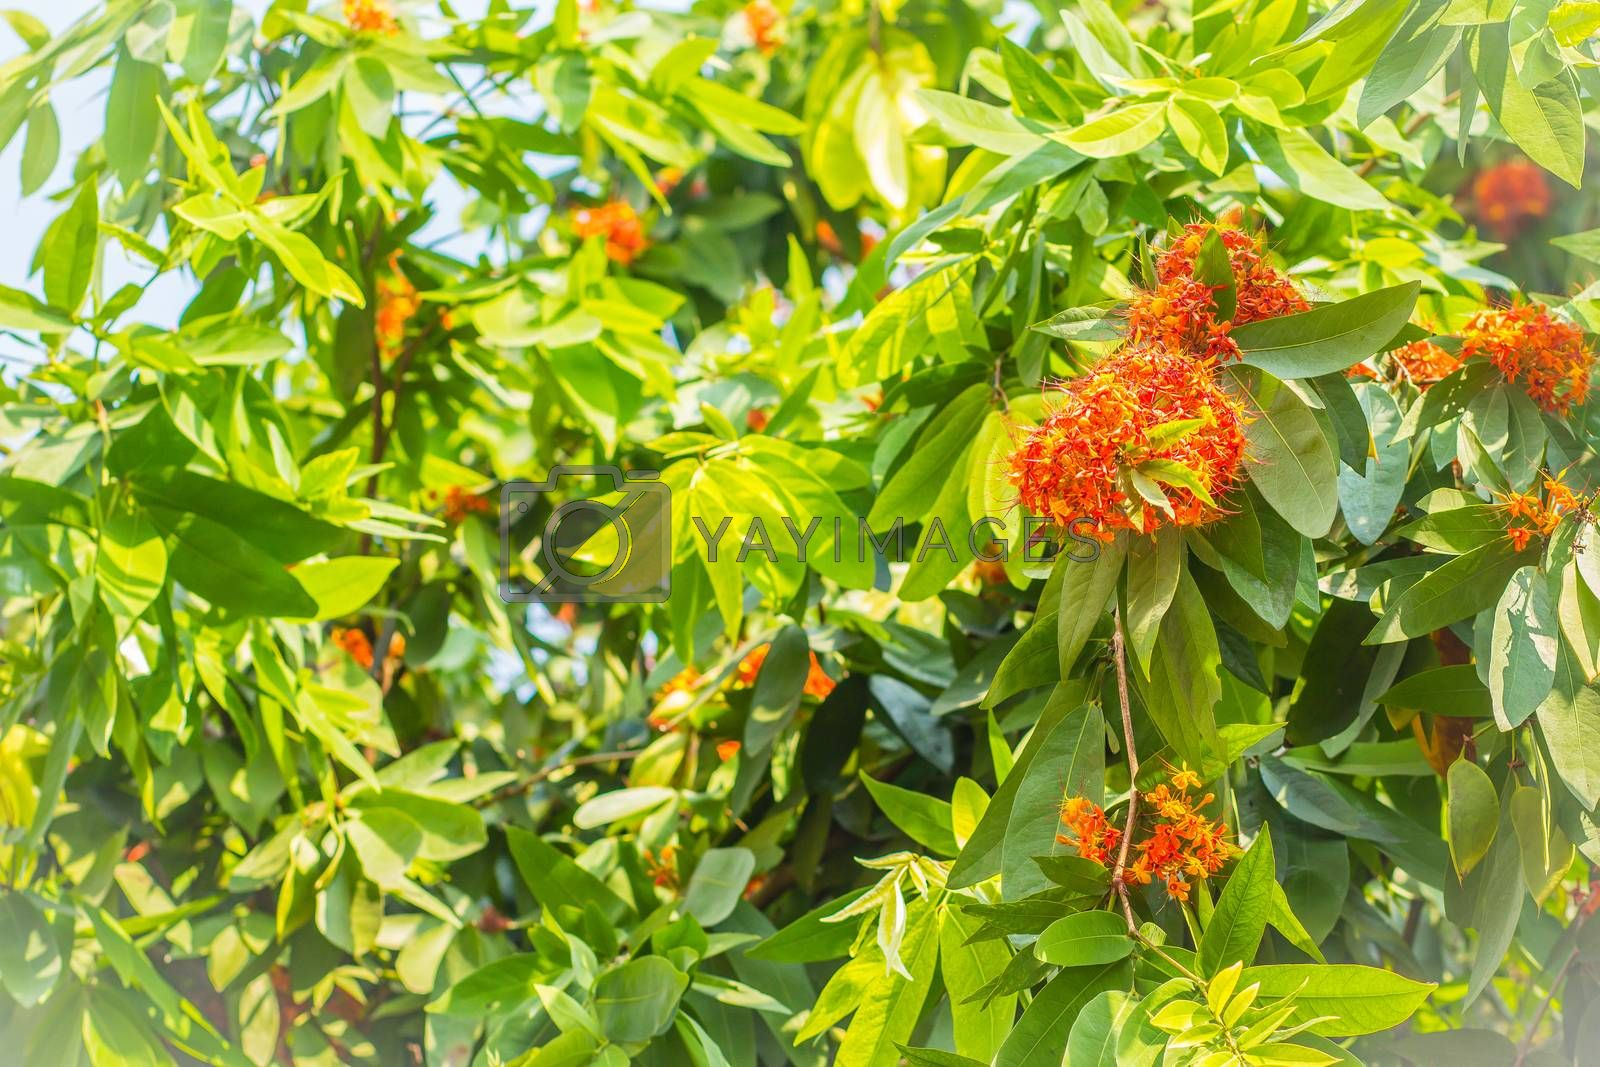 Colorful orange and yellow blooms of Saraca asoca (Saraca indica Linn) flowers on tree. Saraca indica Linn also known as asoka tree, Ashok or simply Asoca. It is important tree in traditions of India.